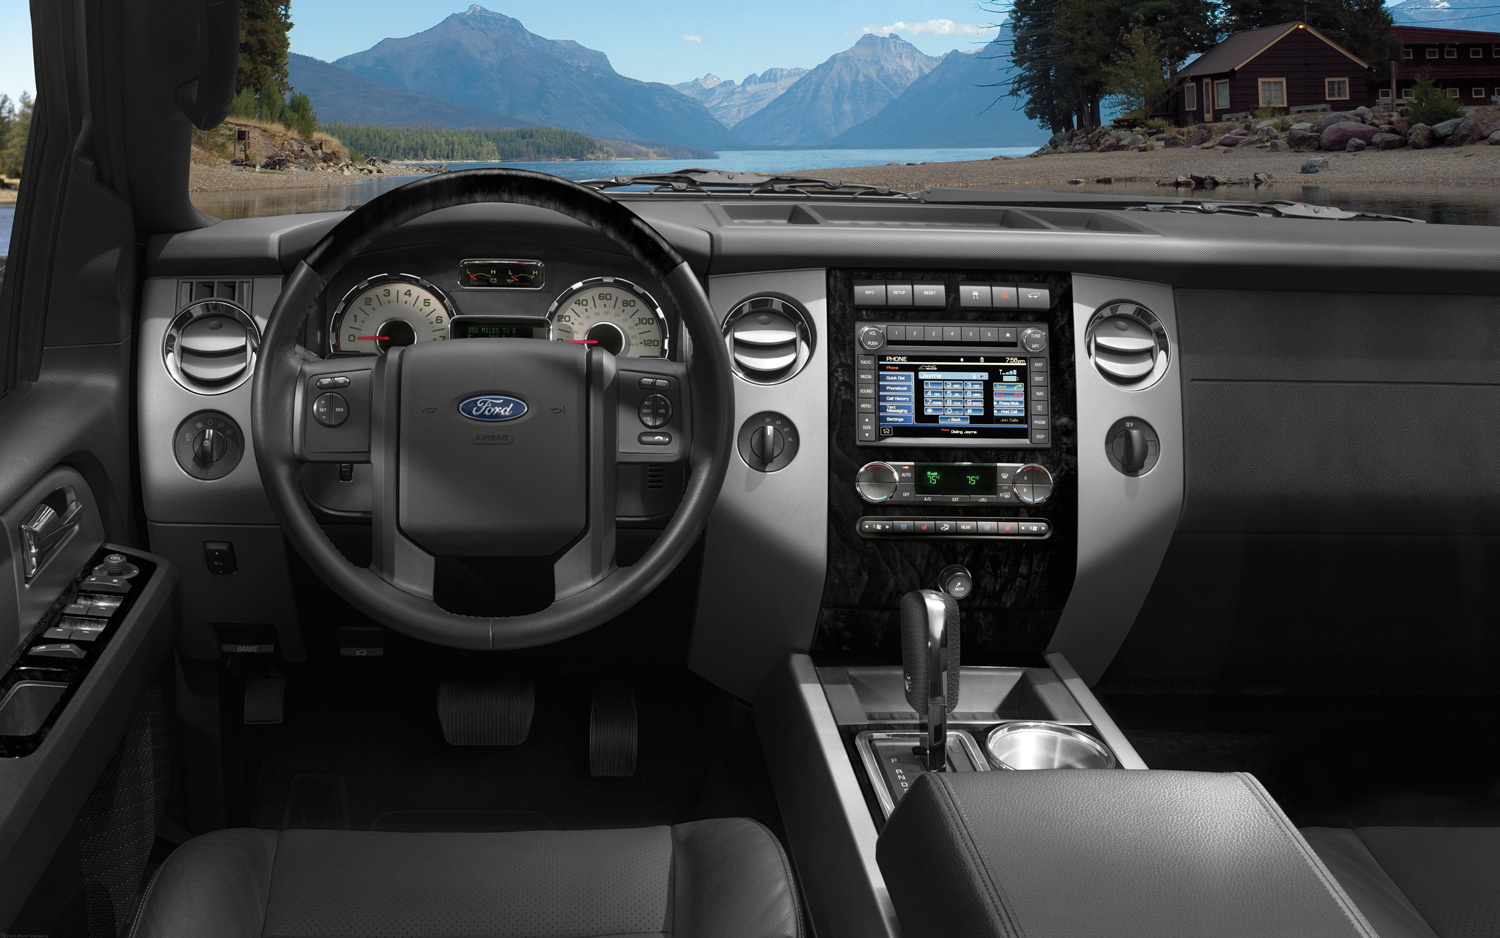 2013 Ford Expedition #10